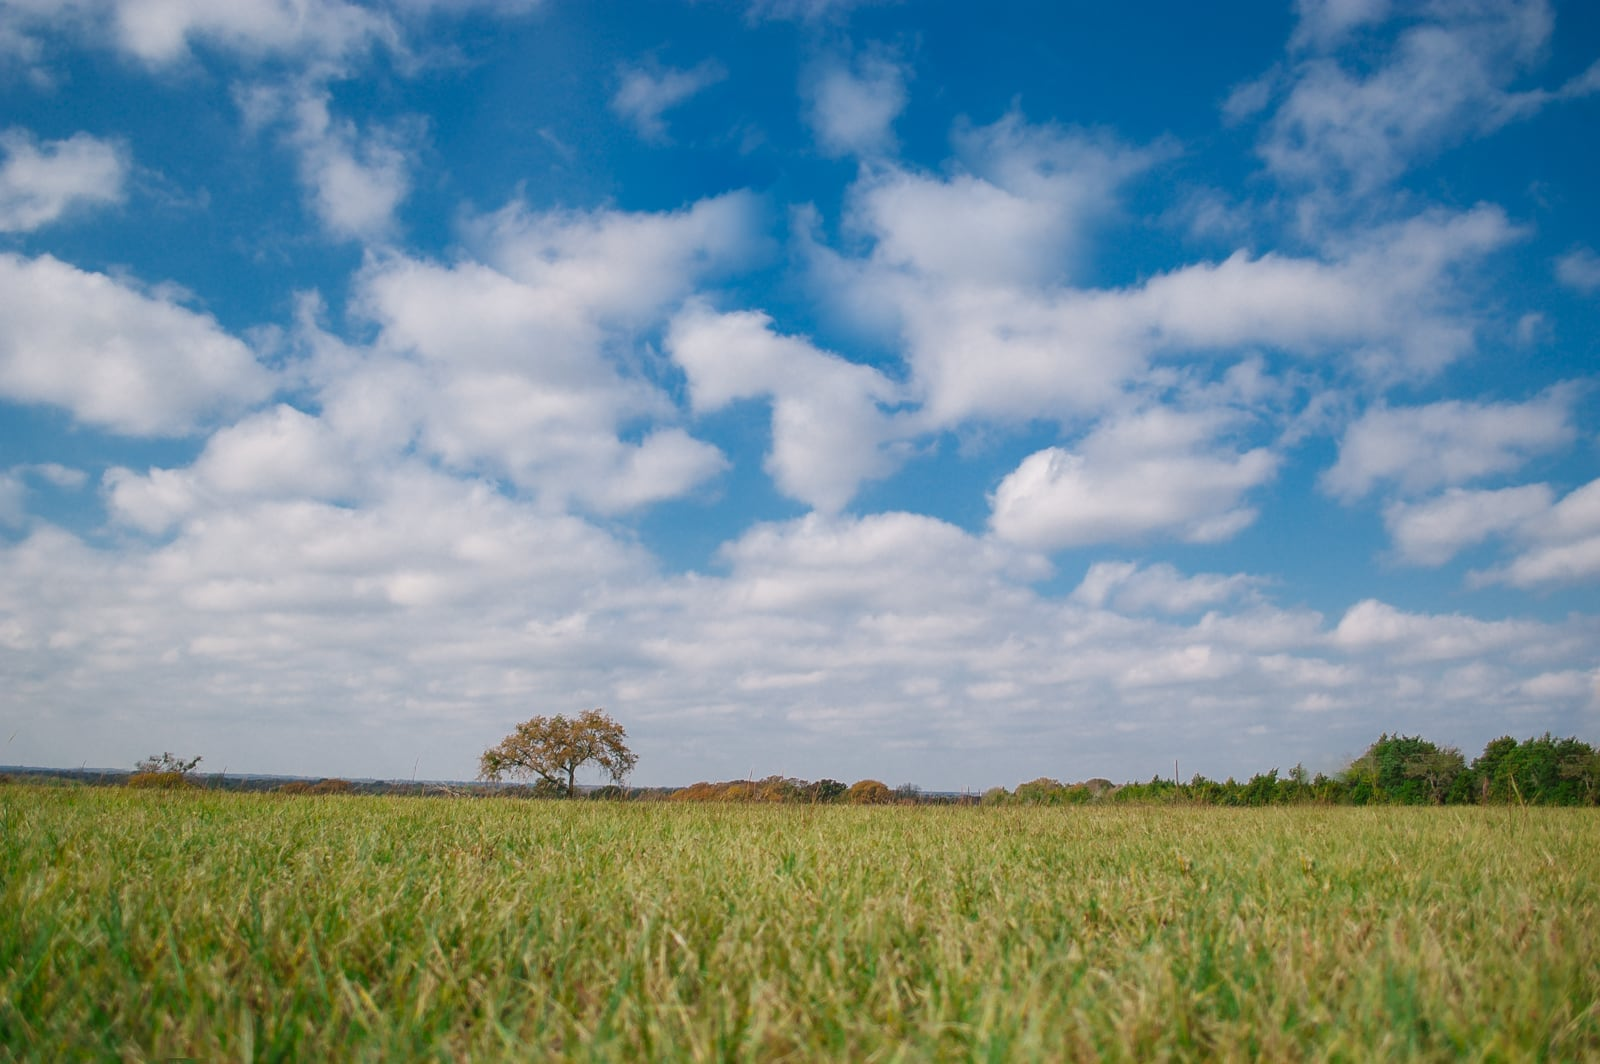 A lone tree in an East Texas pasture